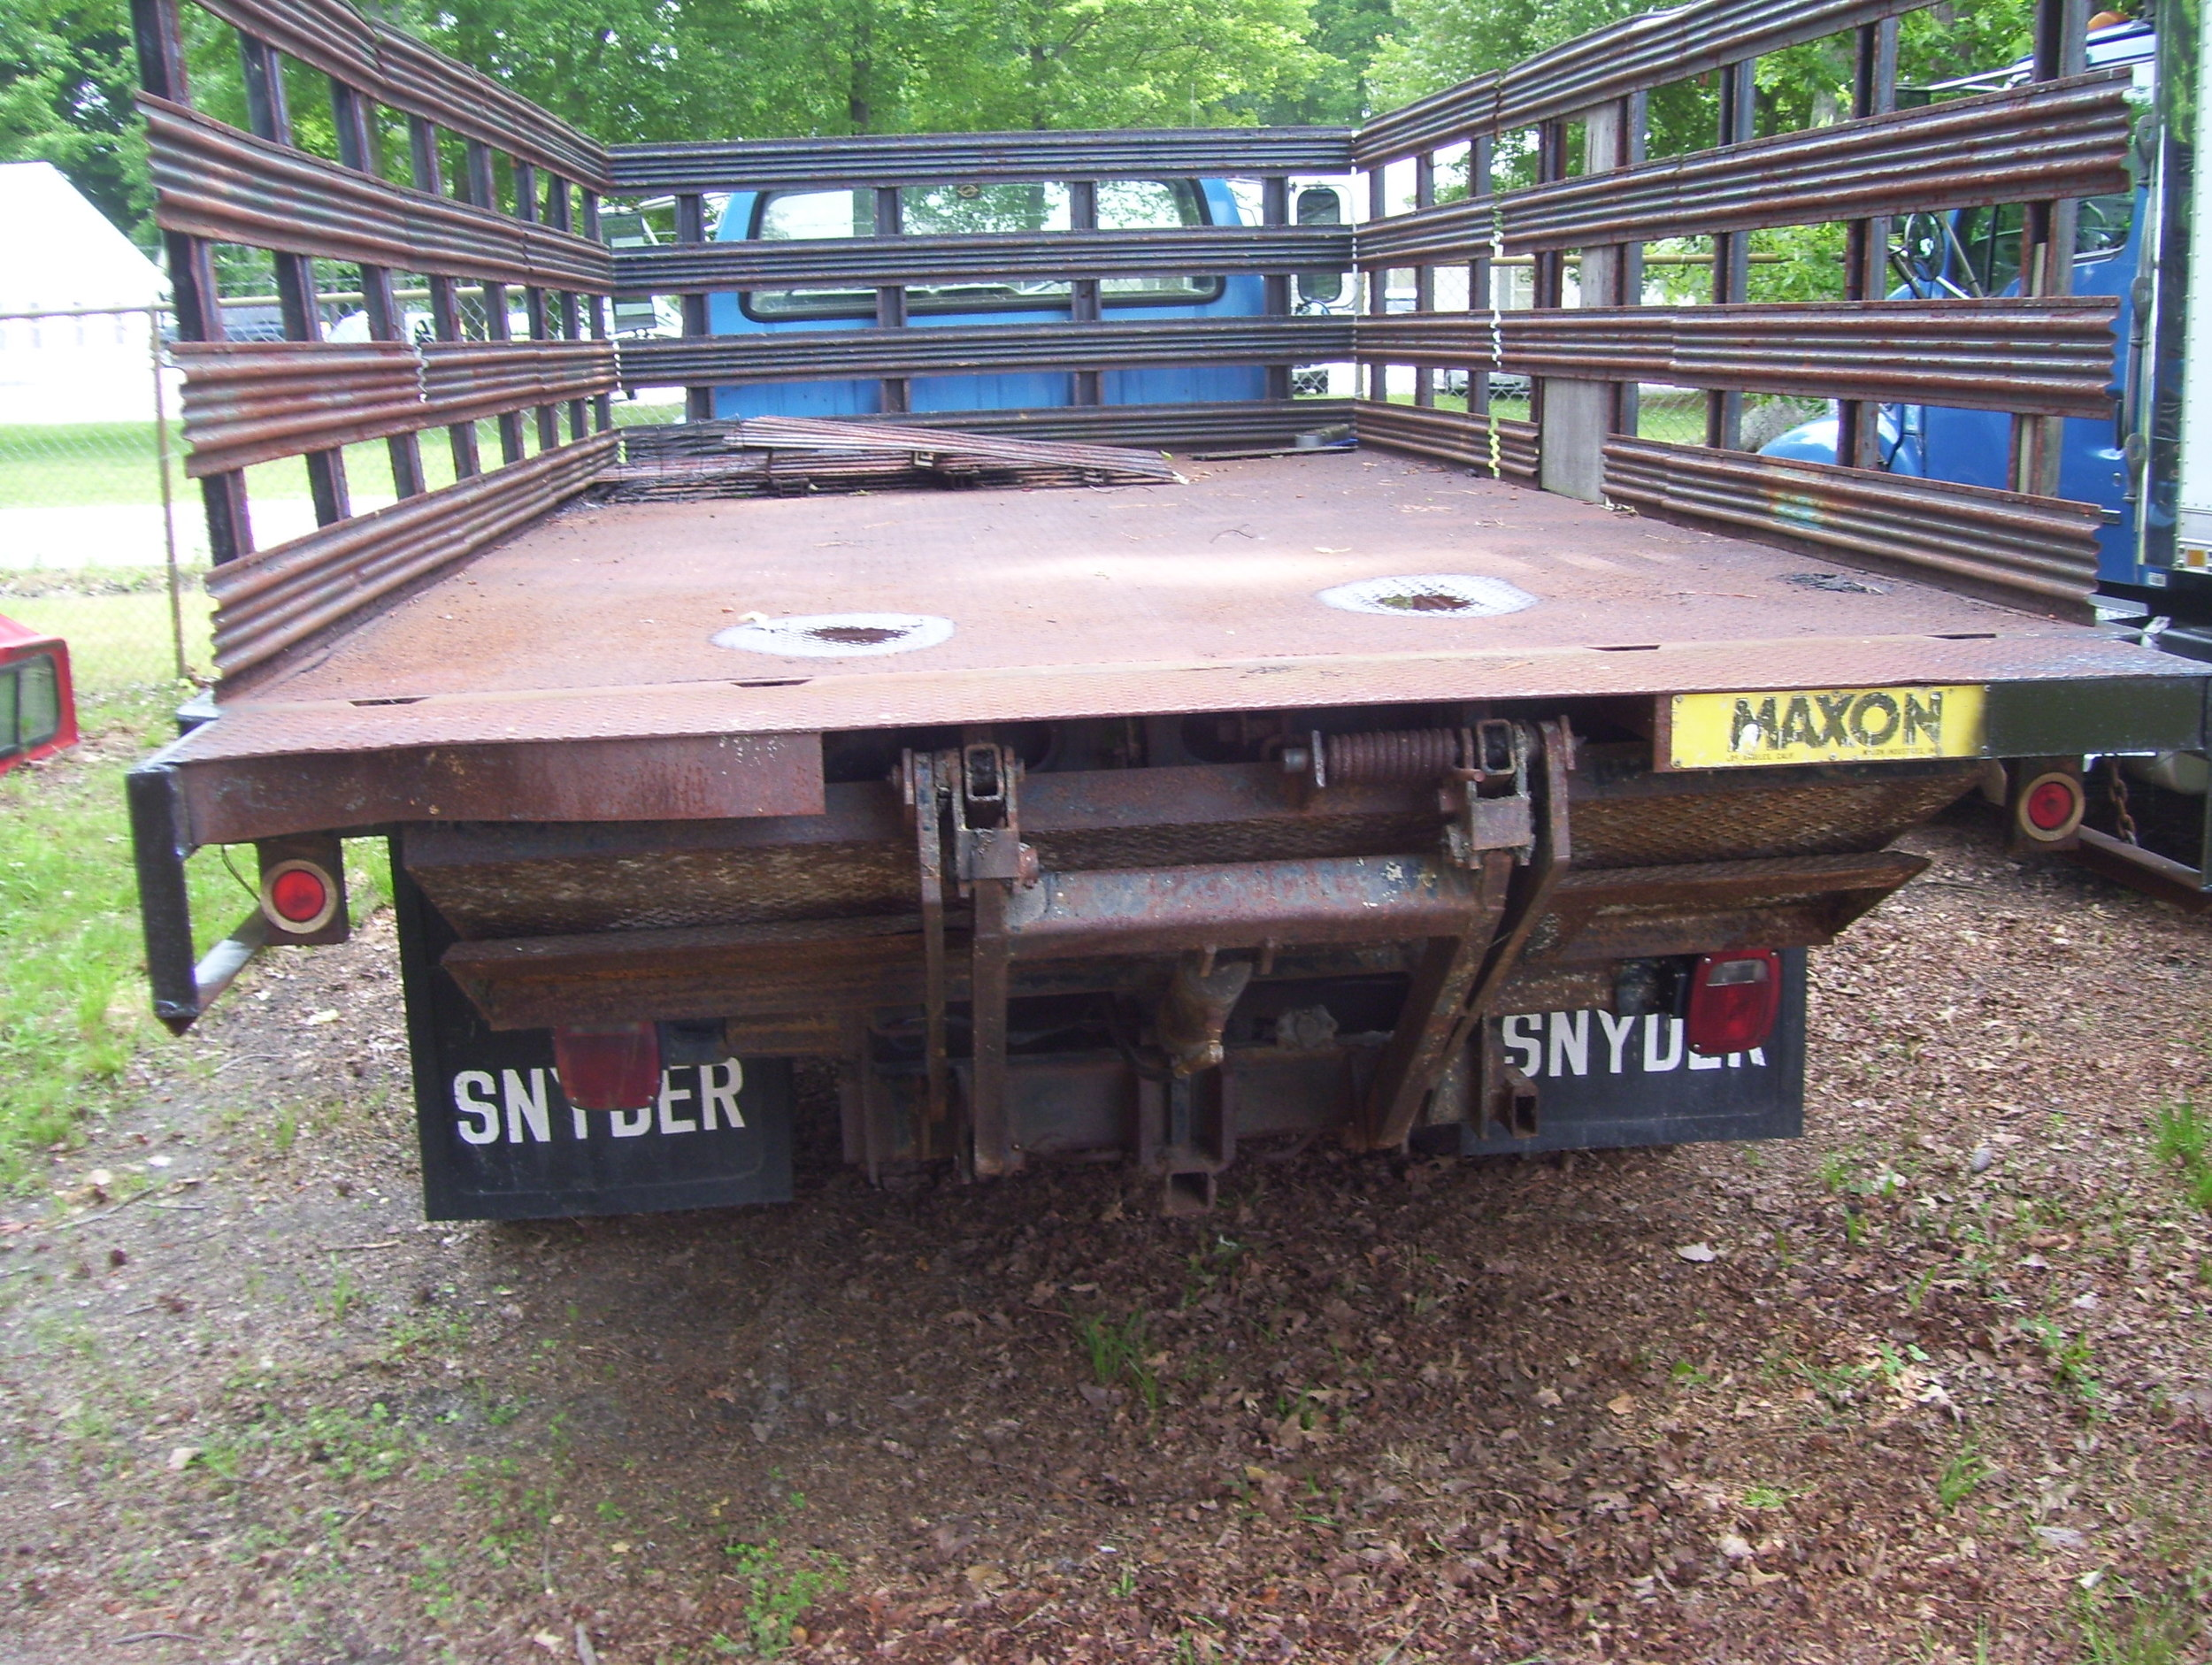 1989 Ford F800 Stake Body with Lift Gate